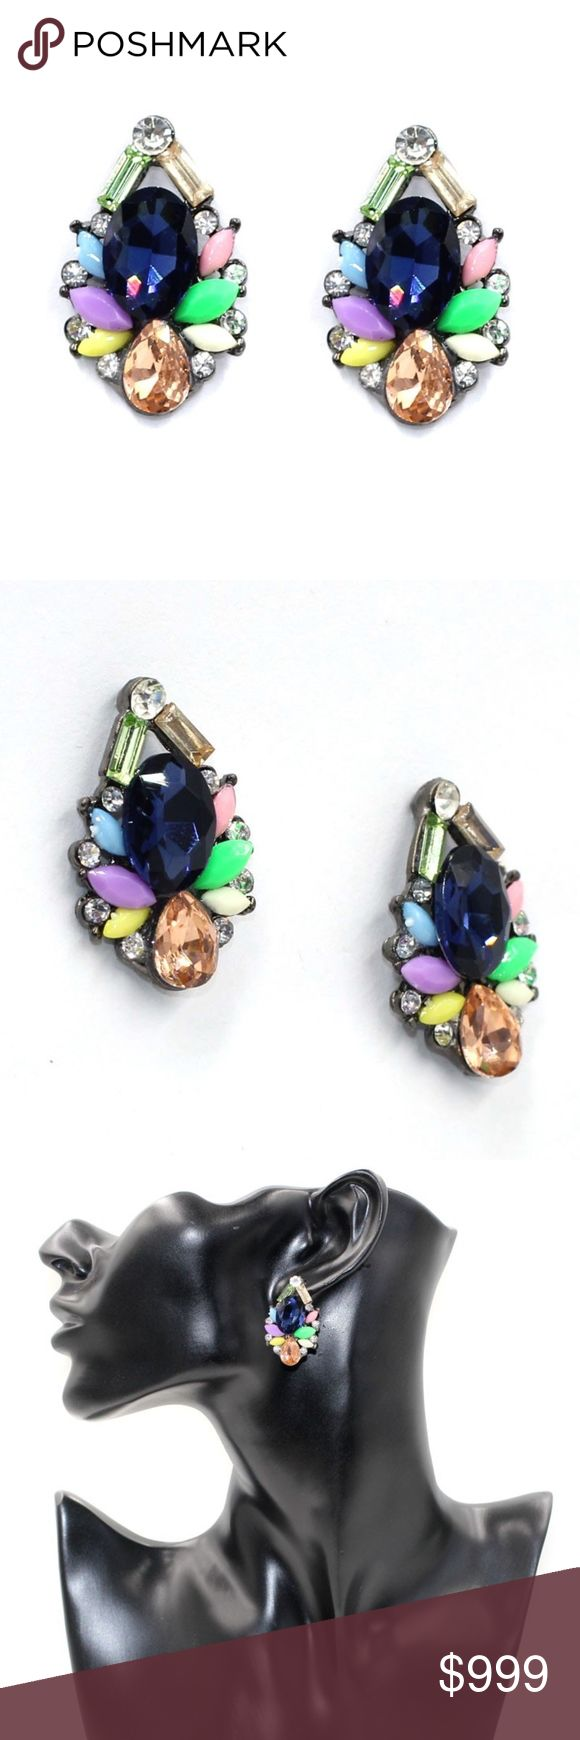 COMING SOON! Multicolor Crystal Statement Earrings Coming Soon!! (Price available upon arrival). Brand new in original packaging! Colorful & bold, these gem drop earrings will turn heads! gorgeous oversized jewel statement studs feature navy, champagne topaz, amber, sky blue, neon yellow, green, blush pink, light green, lavender purple, creamy white & clear crystal embellishments set in antique silver colored metal alloy with push backs. Multiple colors available! Jewelry Earrings